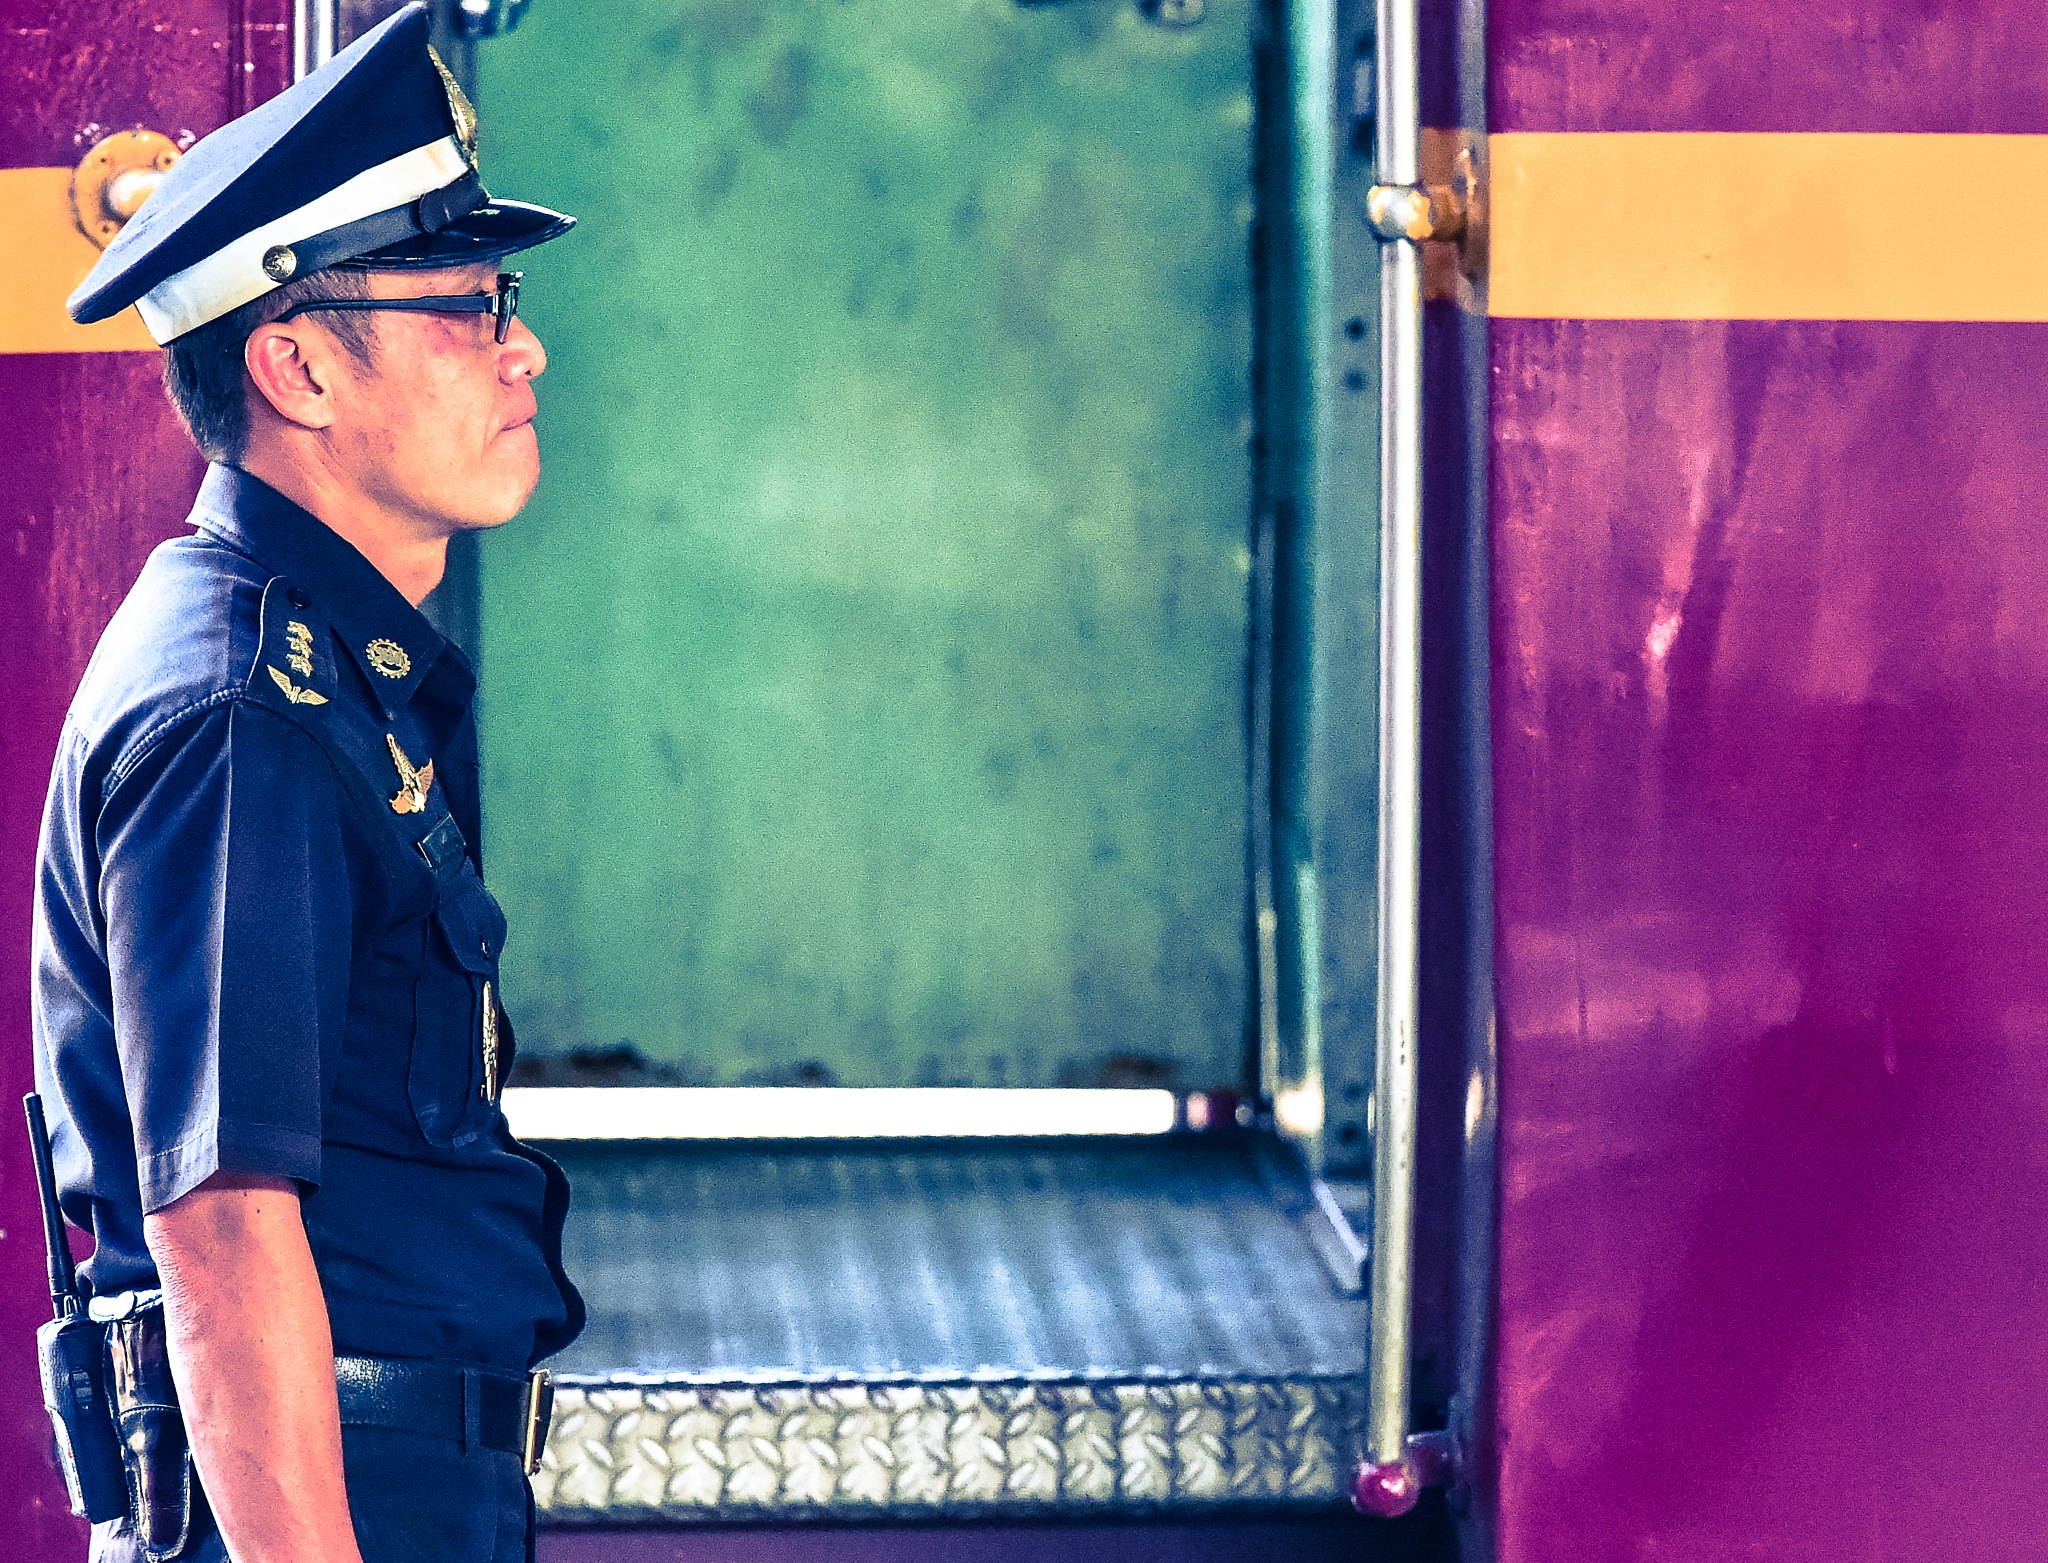 A Day at Bangkok Train Station by noelmiller